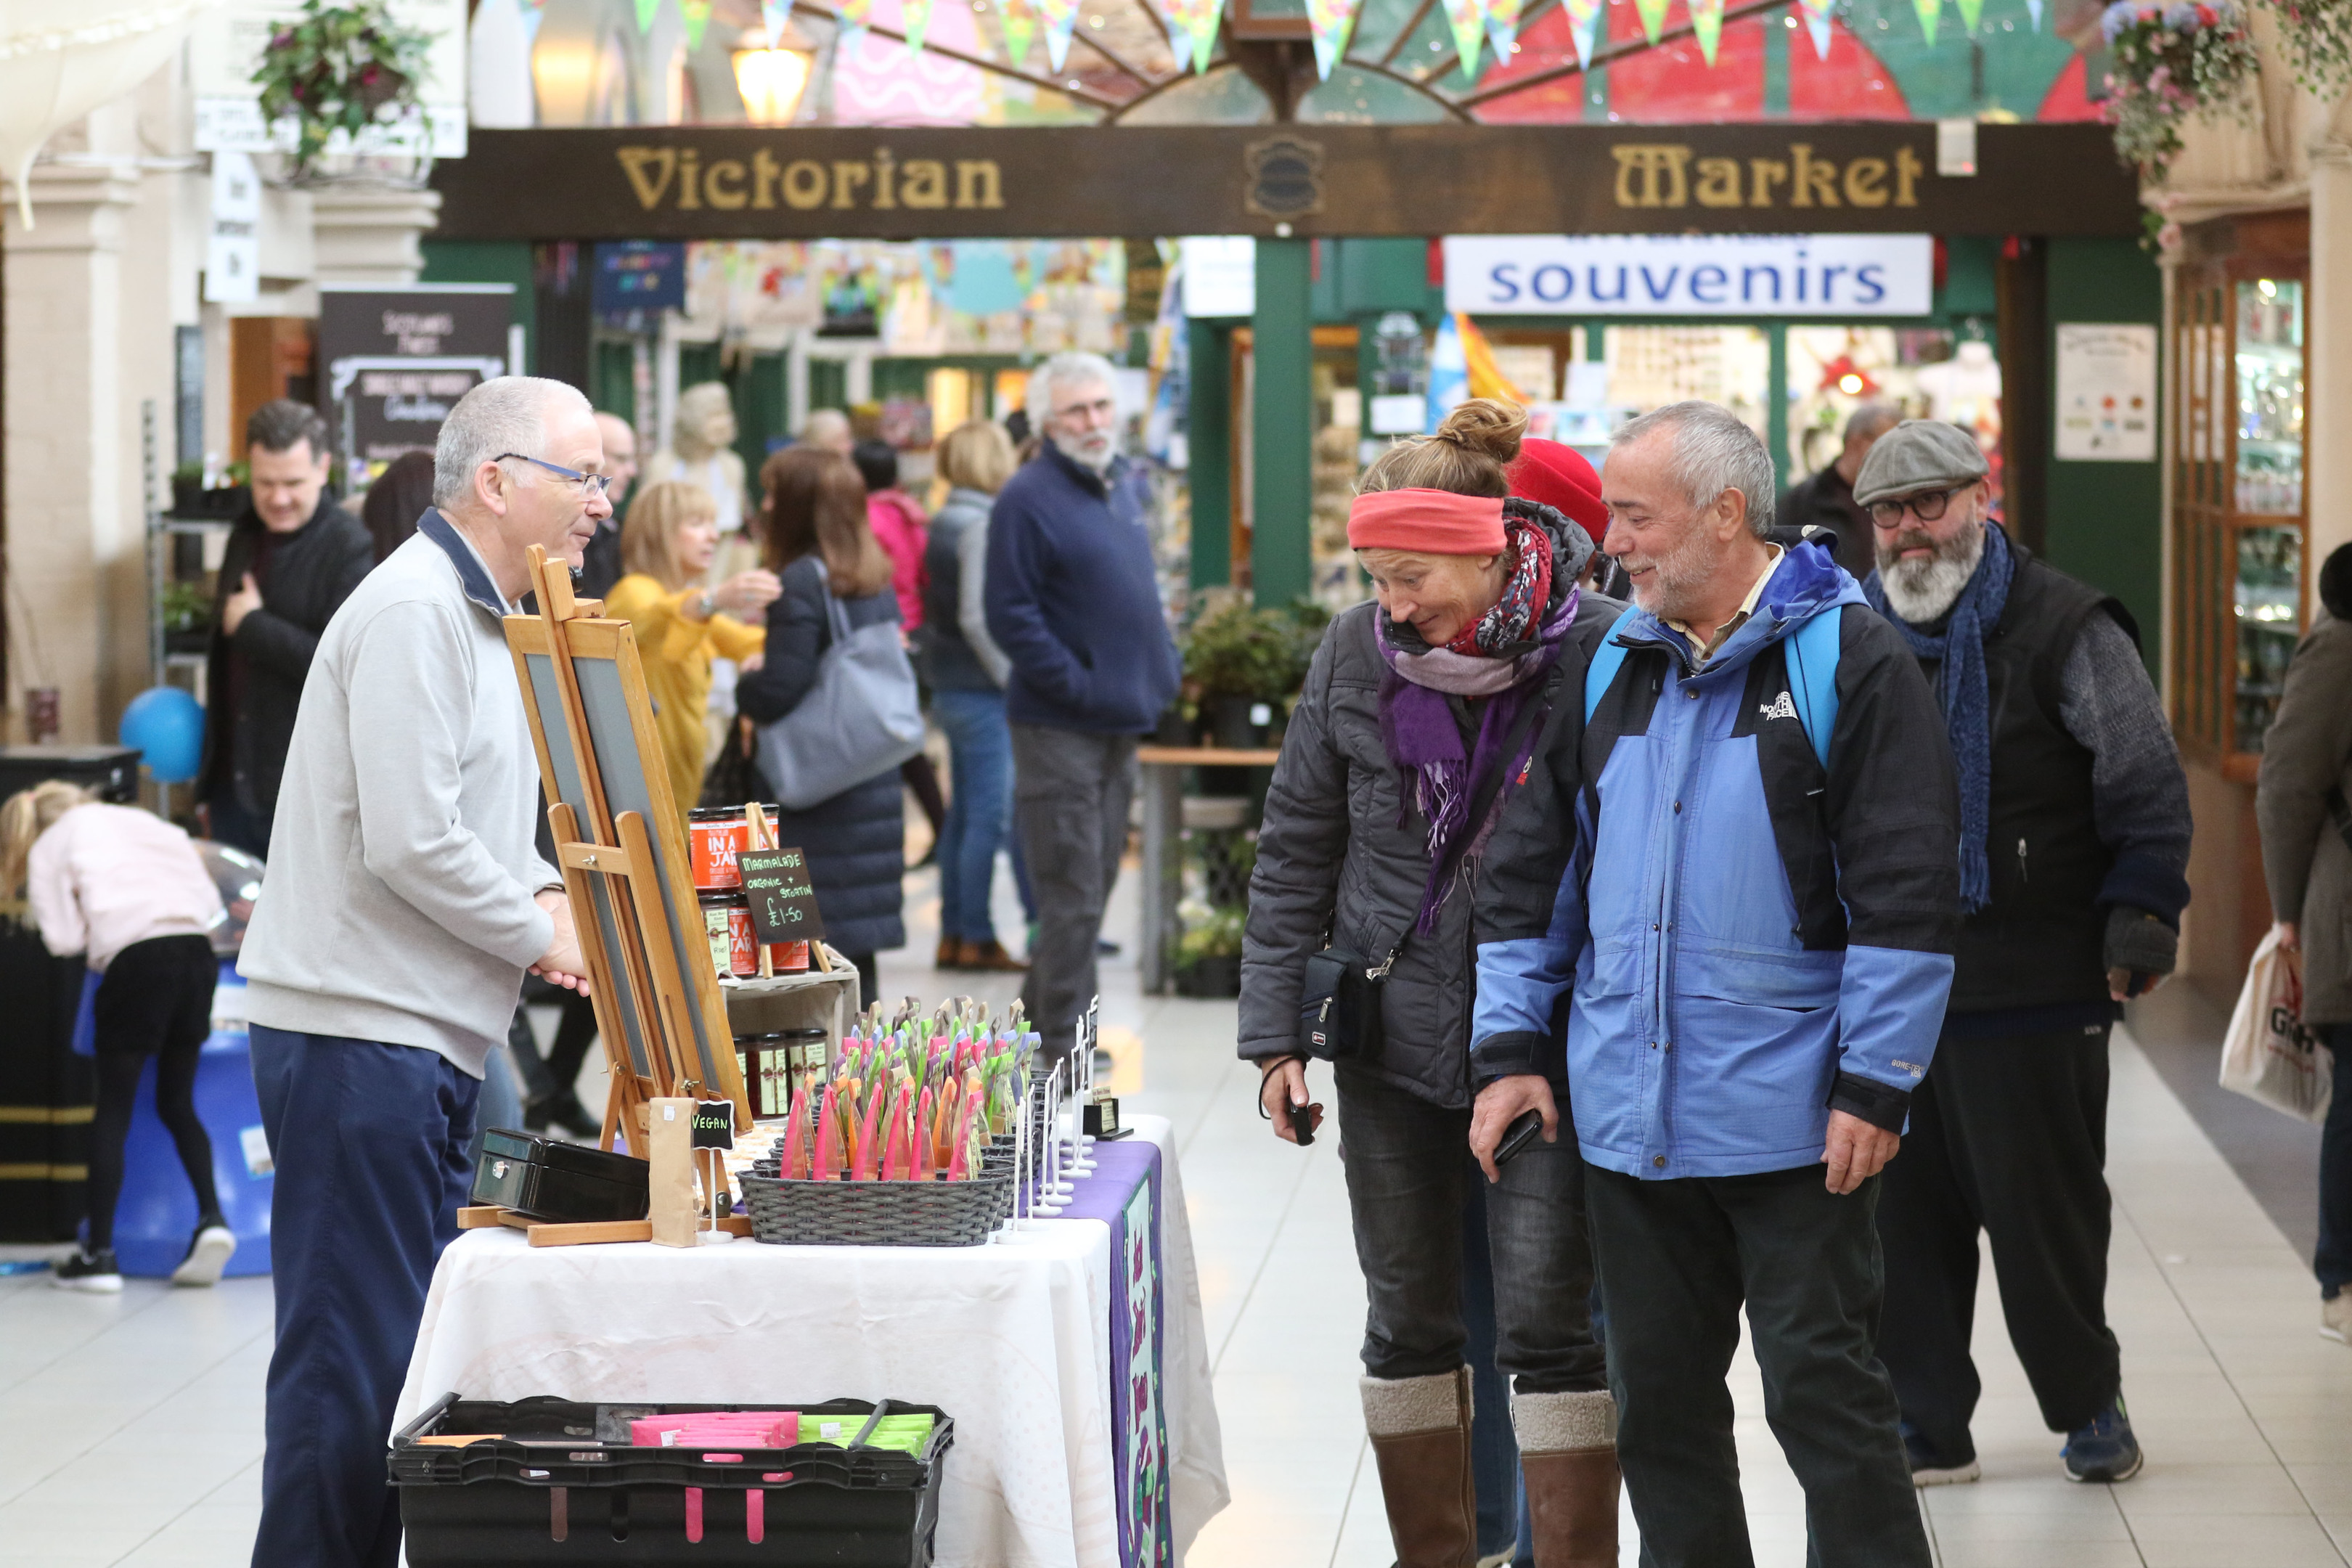 The Victorian Market in Inverness will be opening at the weekend again over summer.